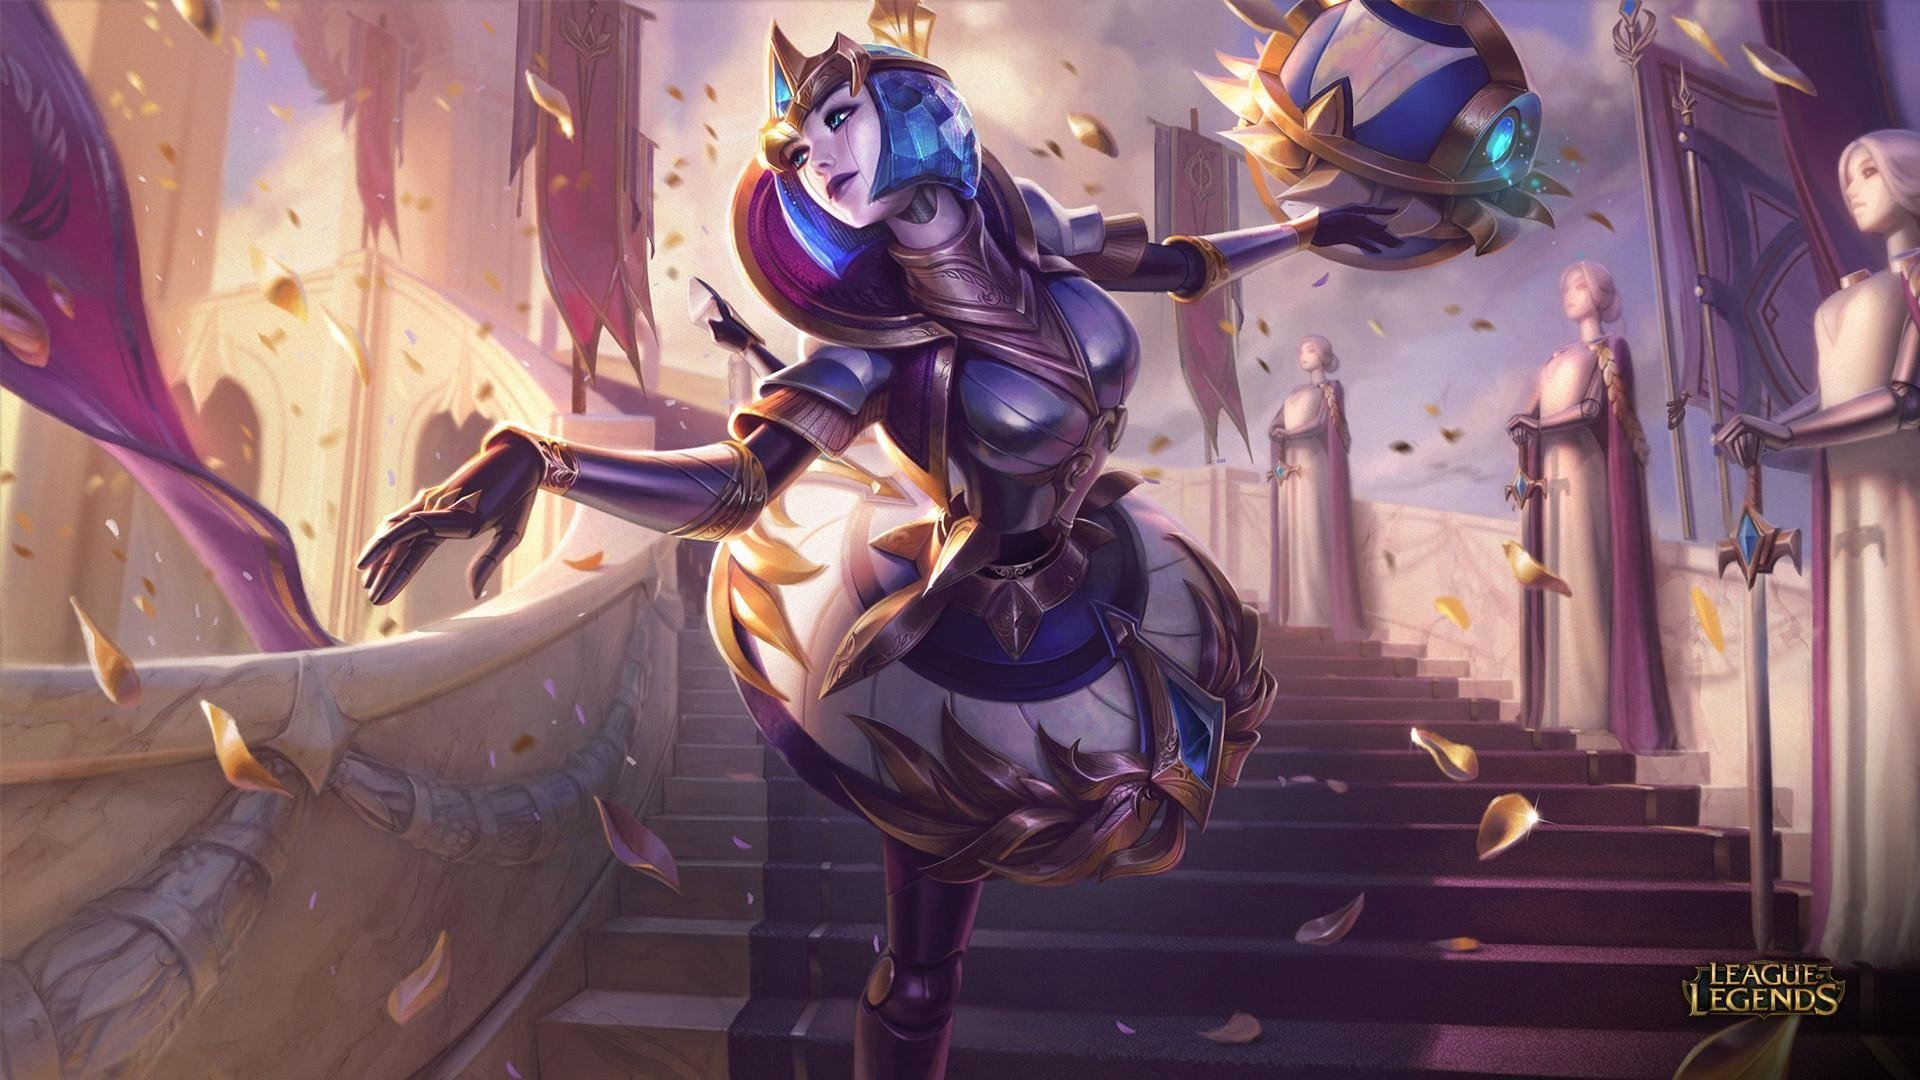 Jhin, Orianna, And Shen Were The Highest Winrate Champions During League Of Legends Worlds 2020